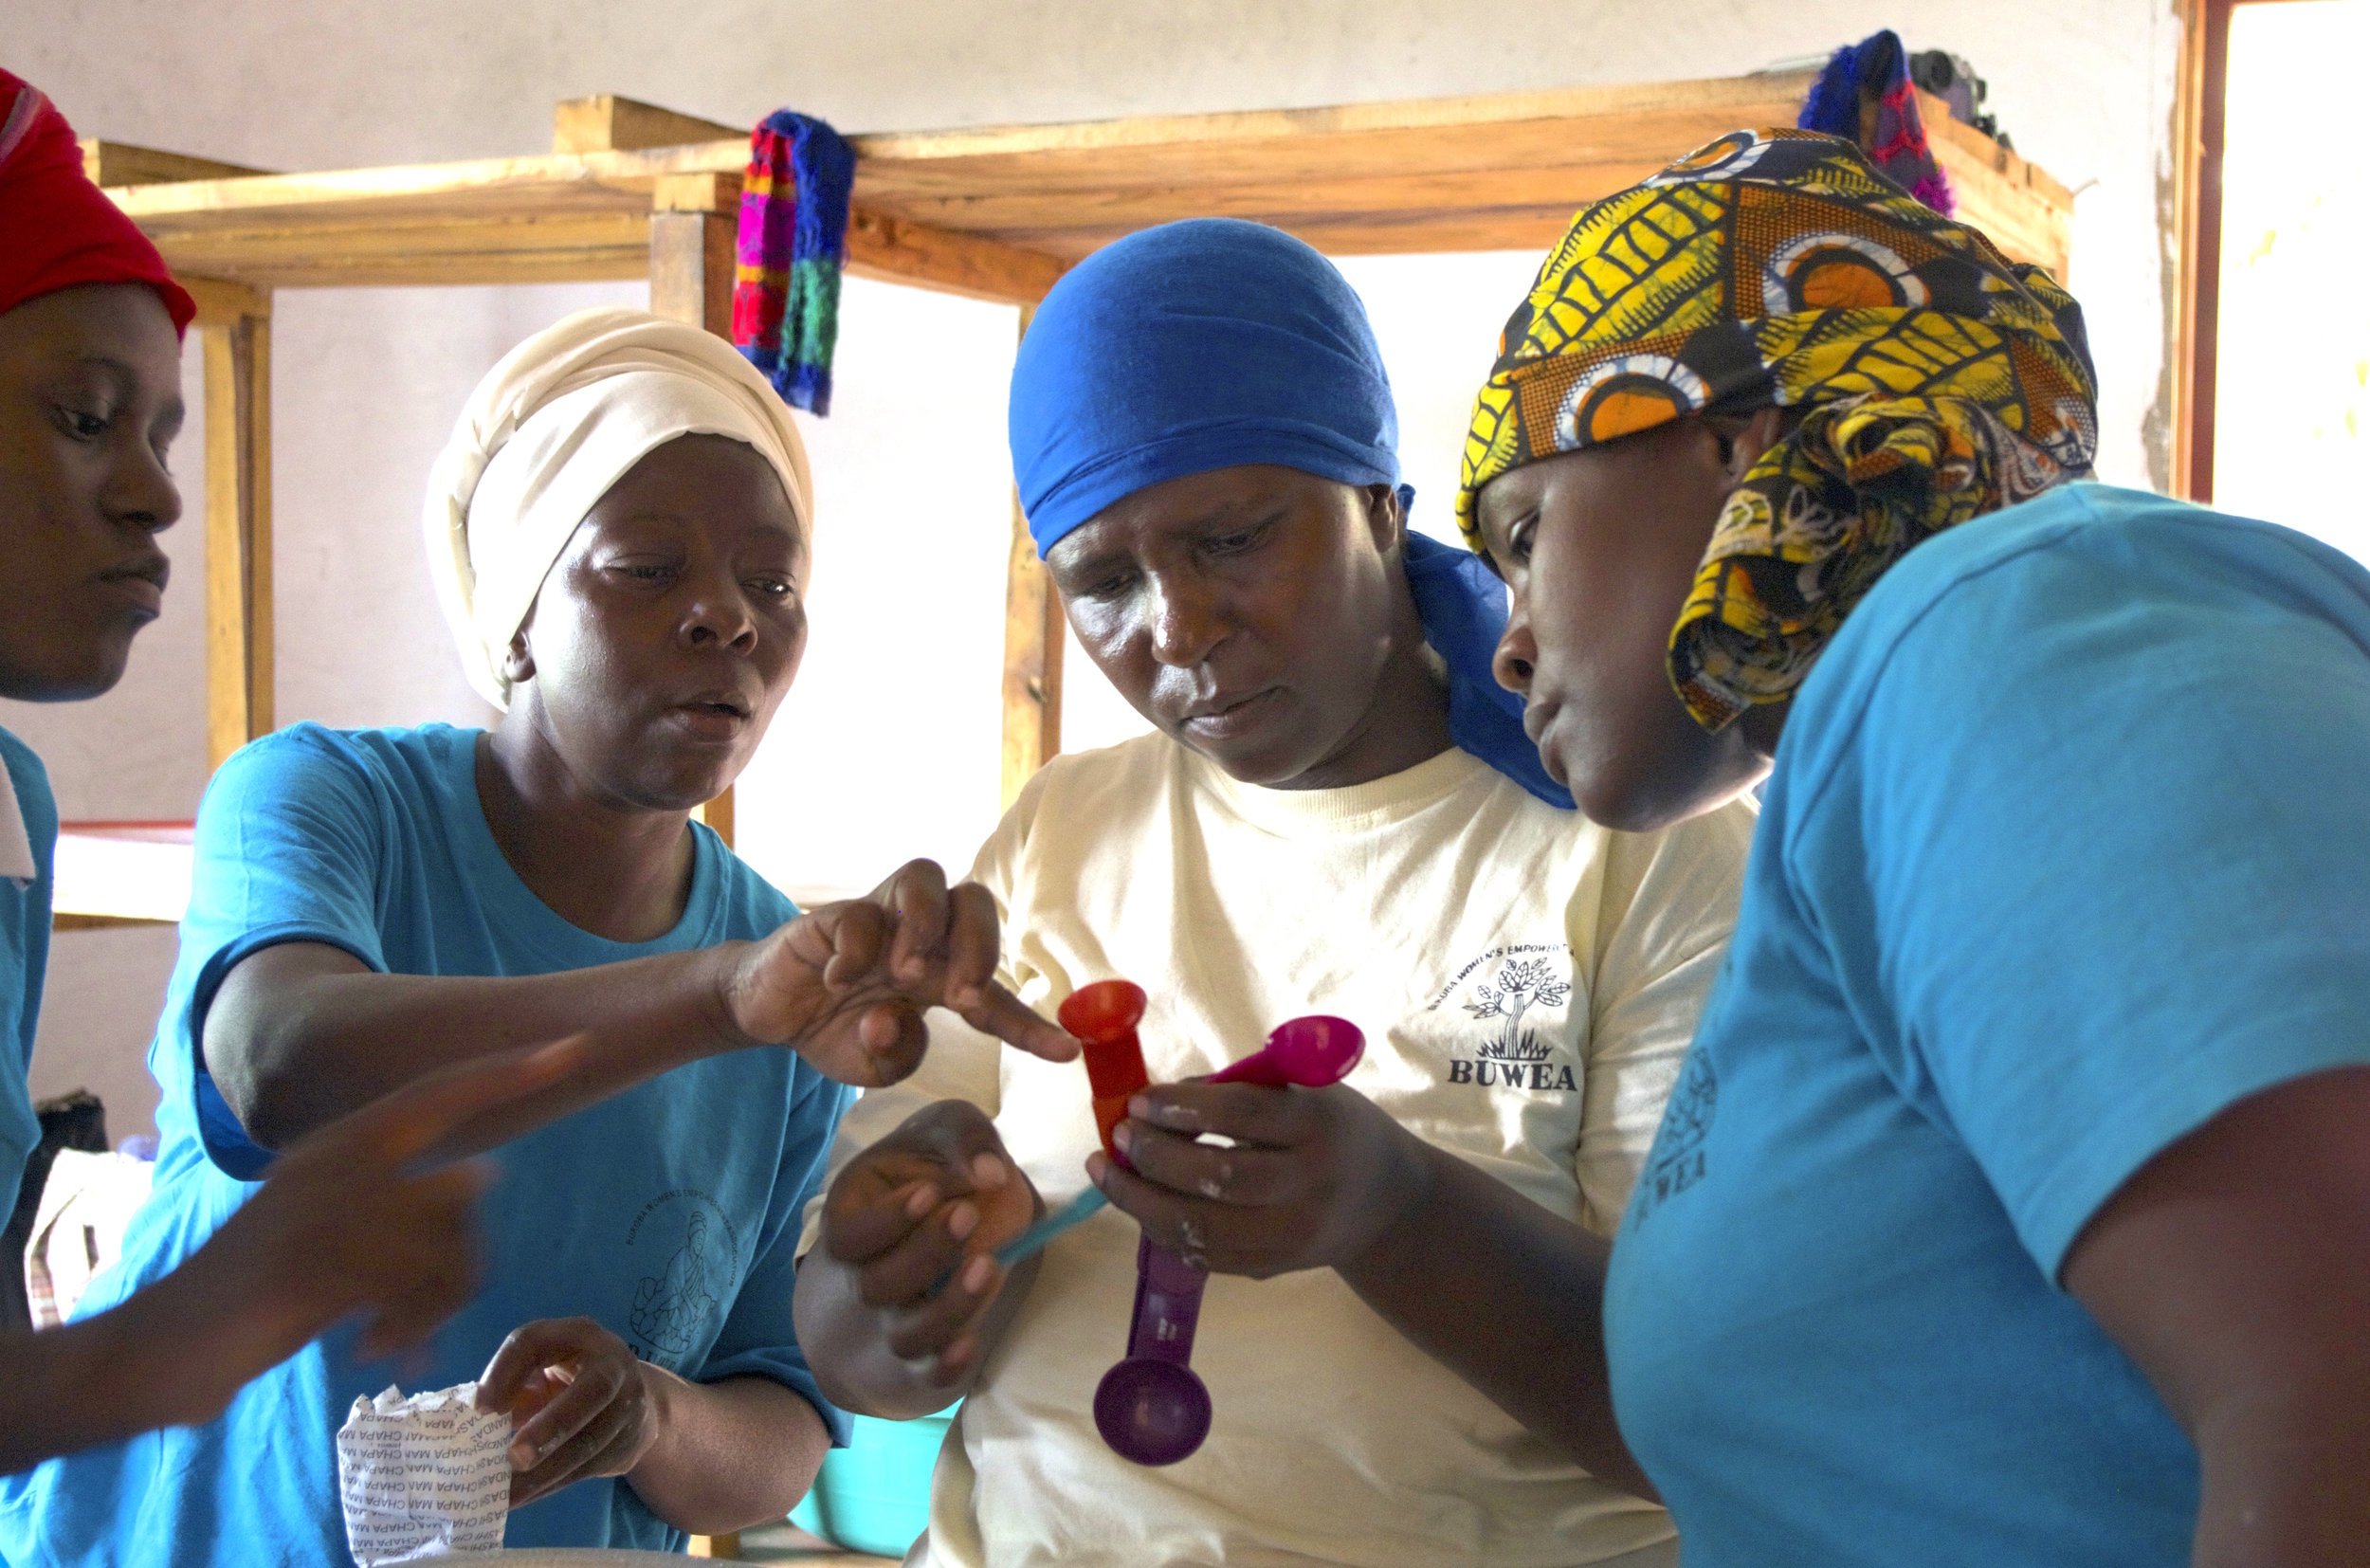 Bukoba_TZ_Learning to use Measuring spoons_Happy and Grace_Mar_2015.jpg